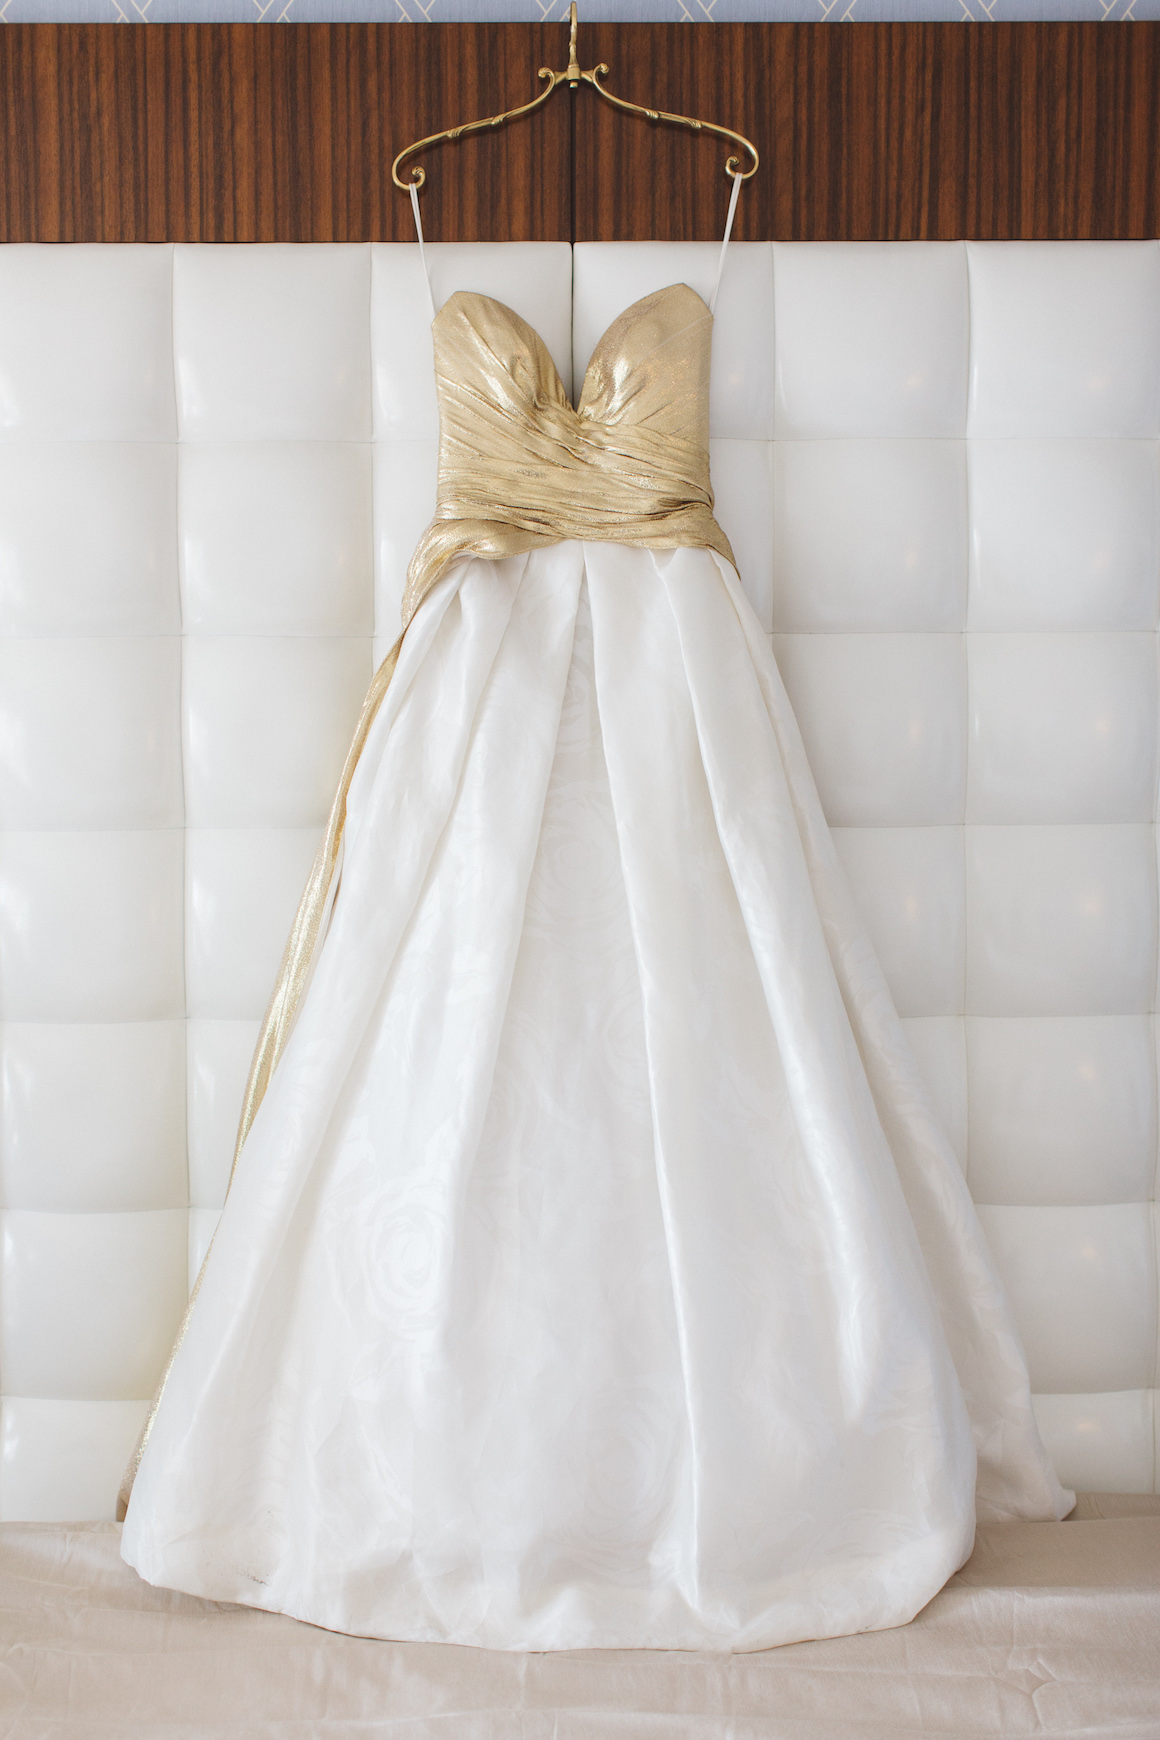 Not-so-White Wedding - The colored Wedding Dresses trend